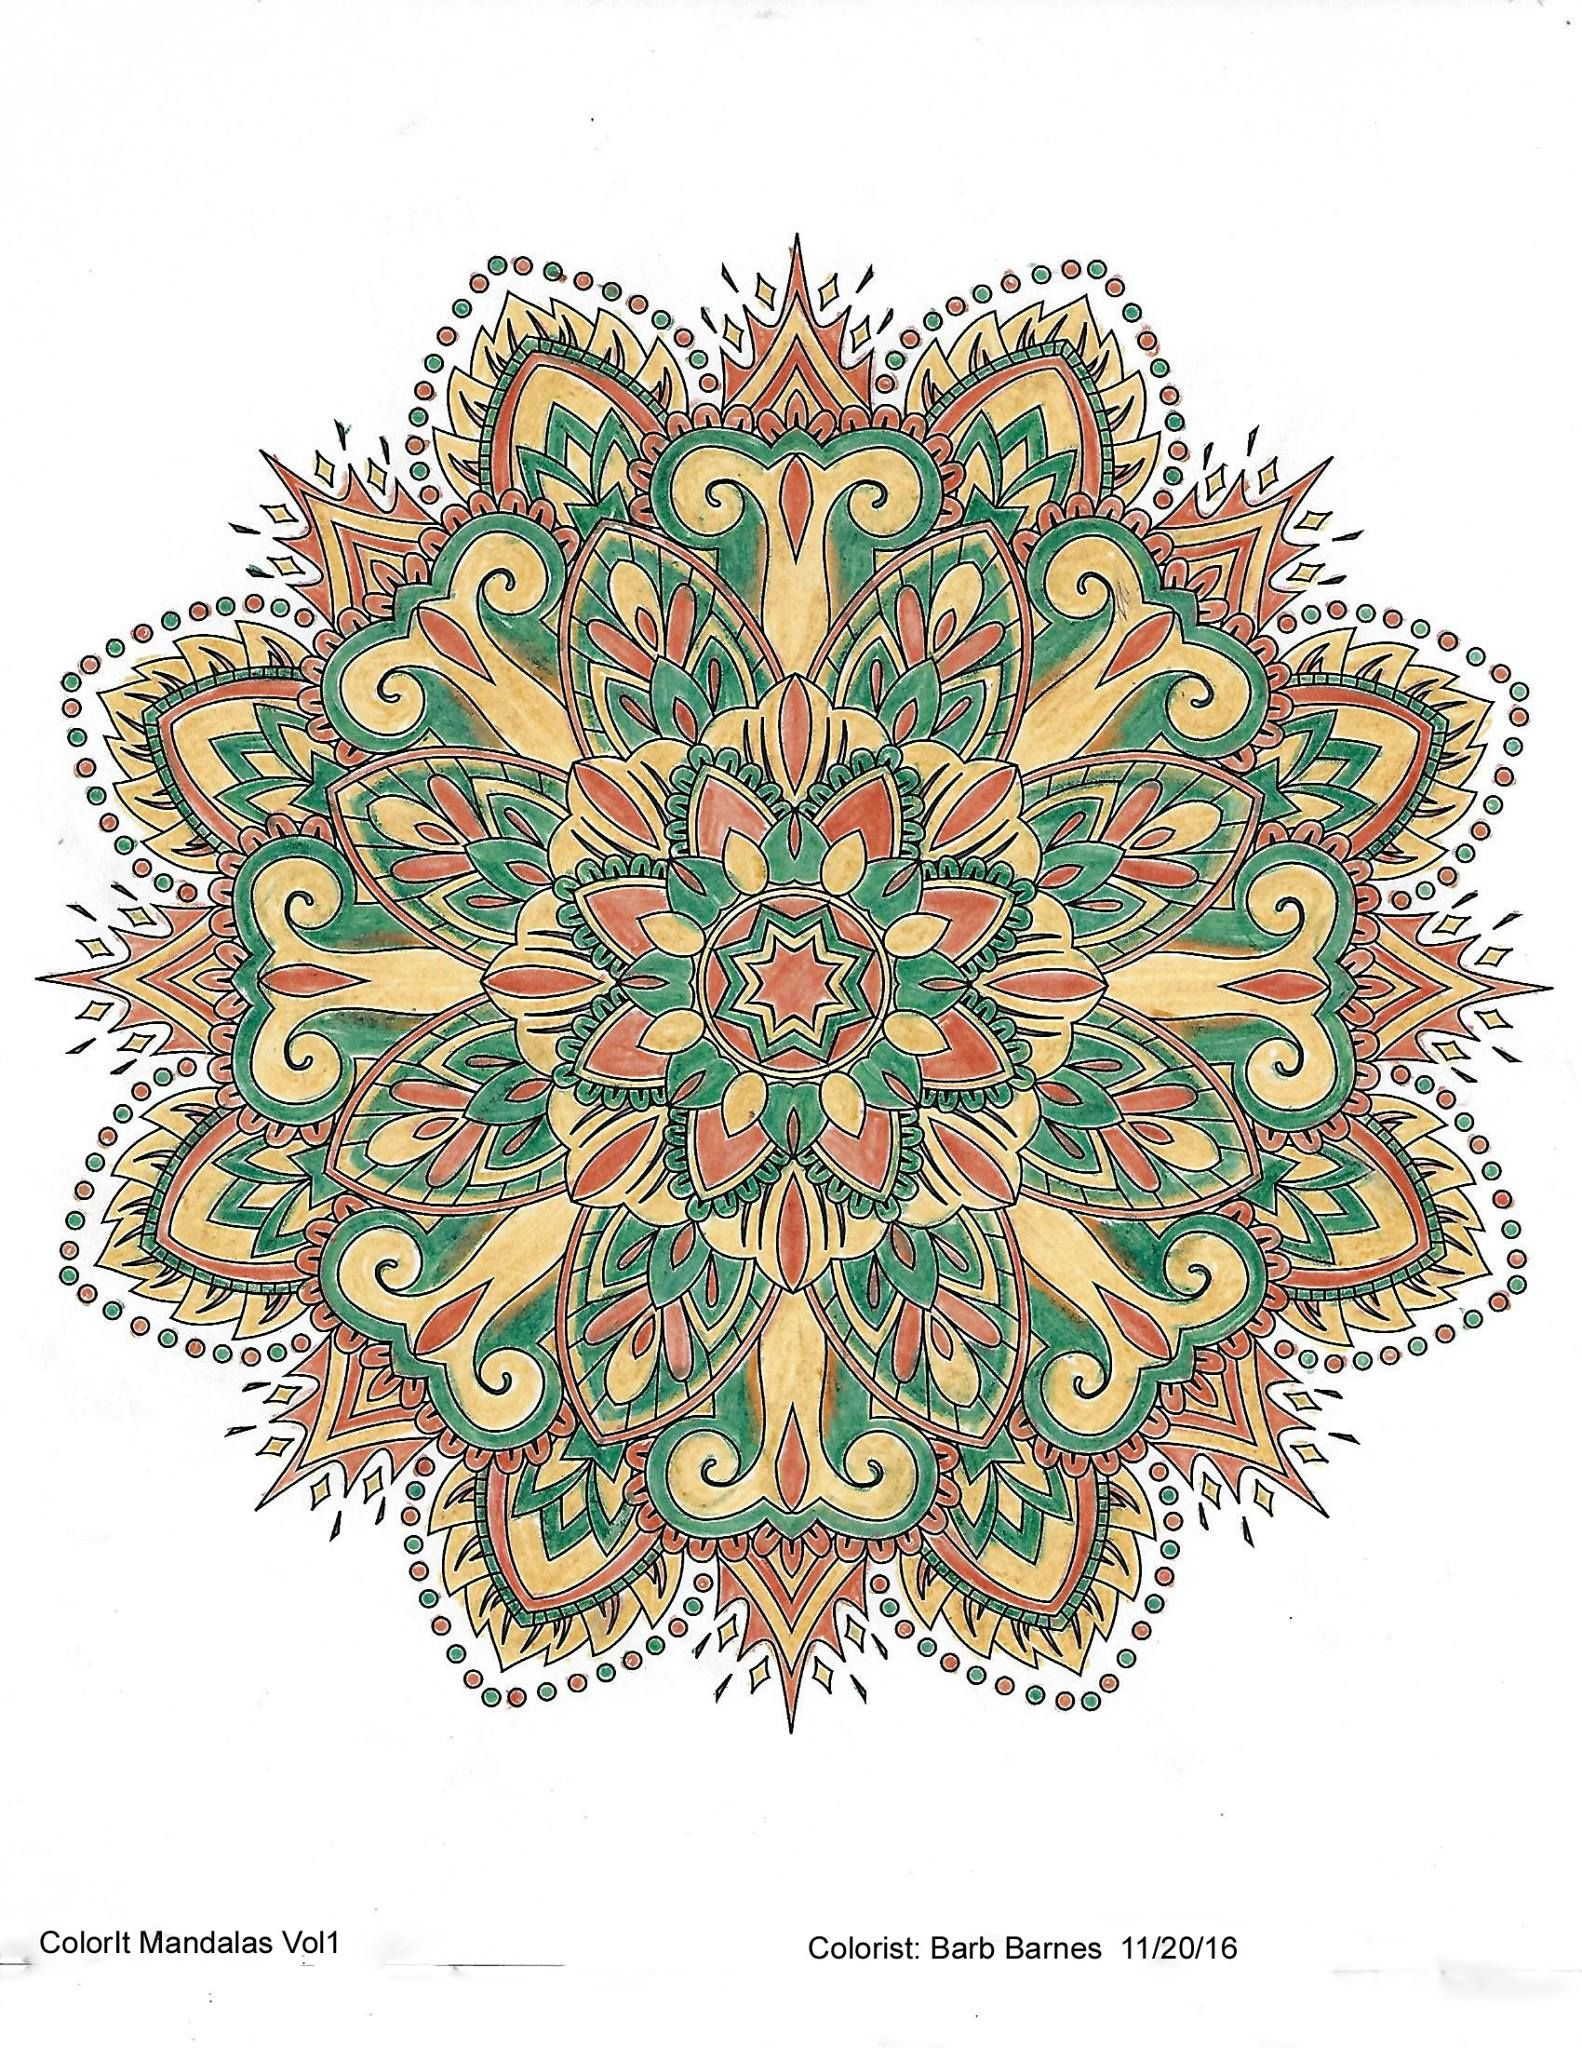 Colorit Mandalas To Color Volume 1 Colorist Barbara Barnes